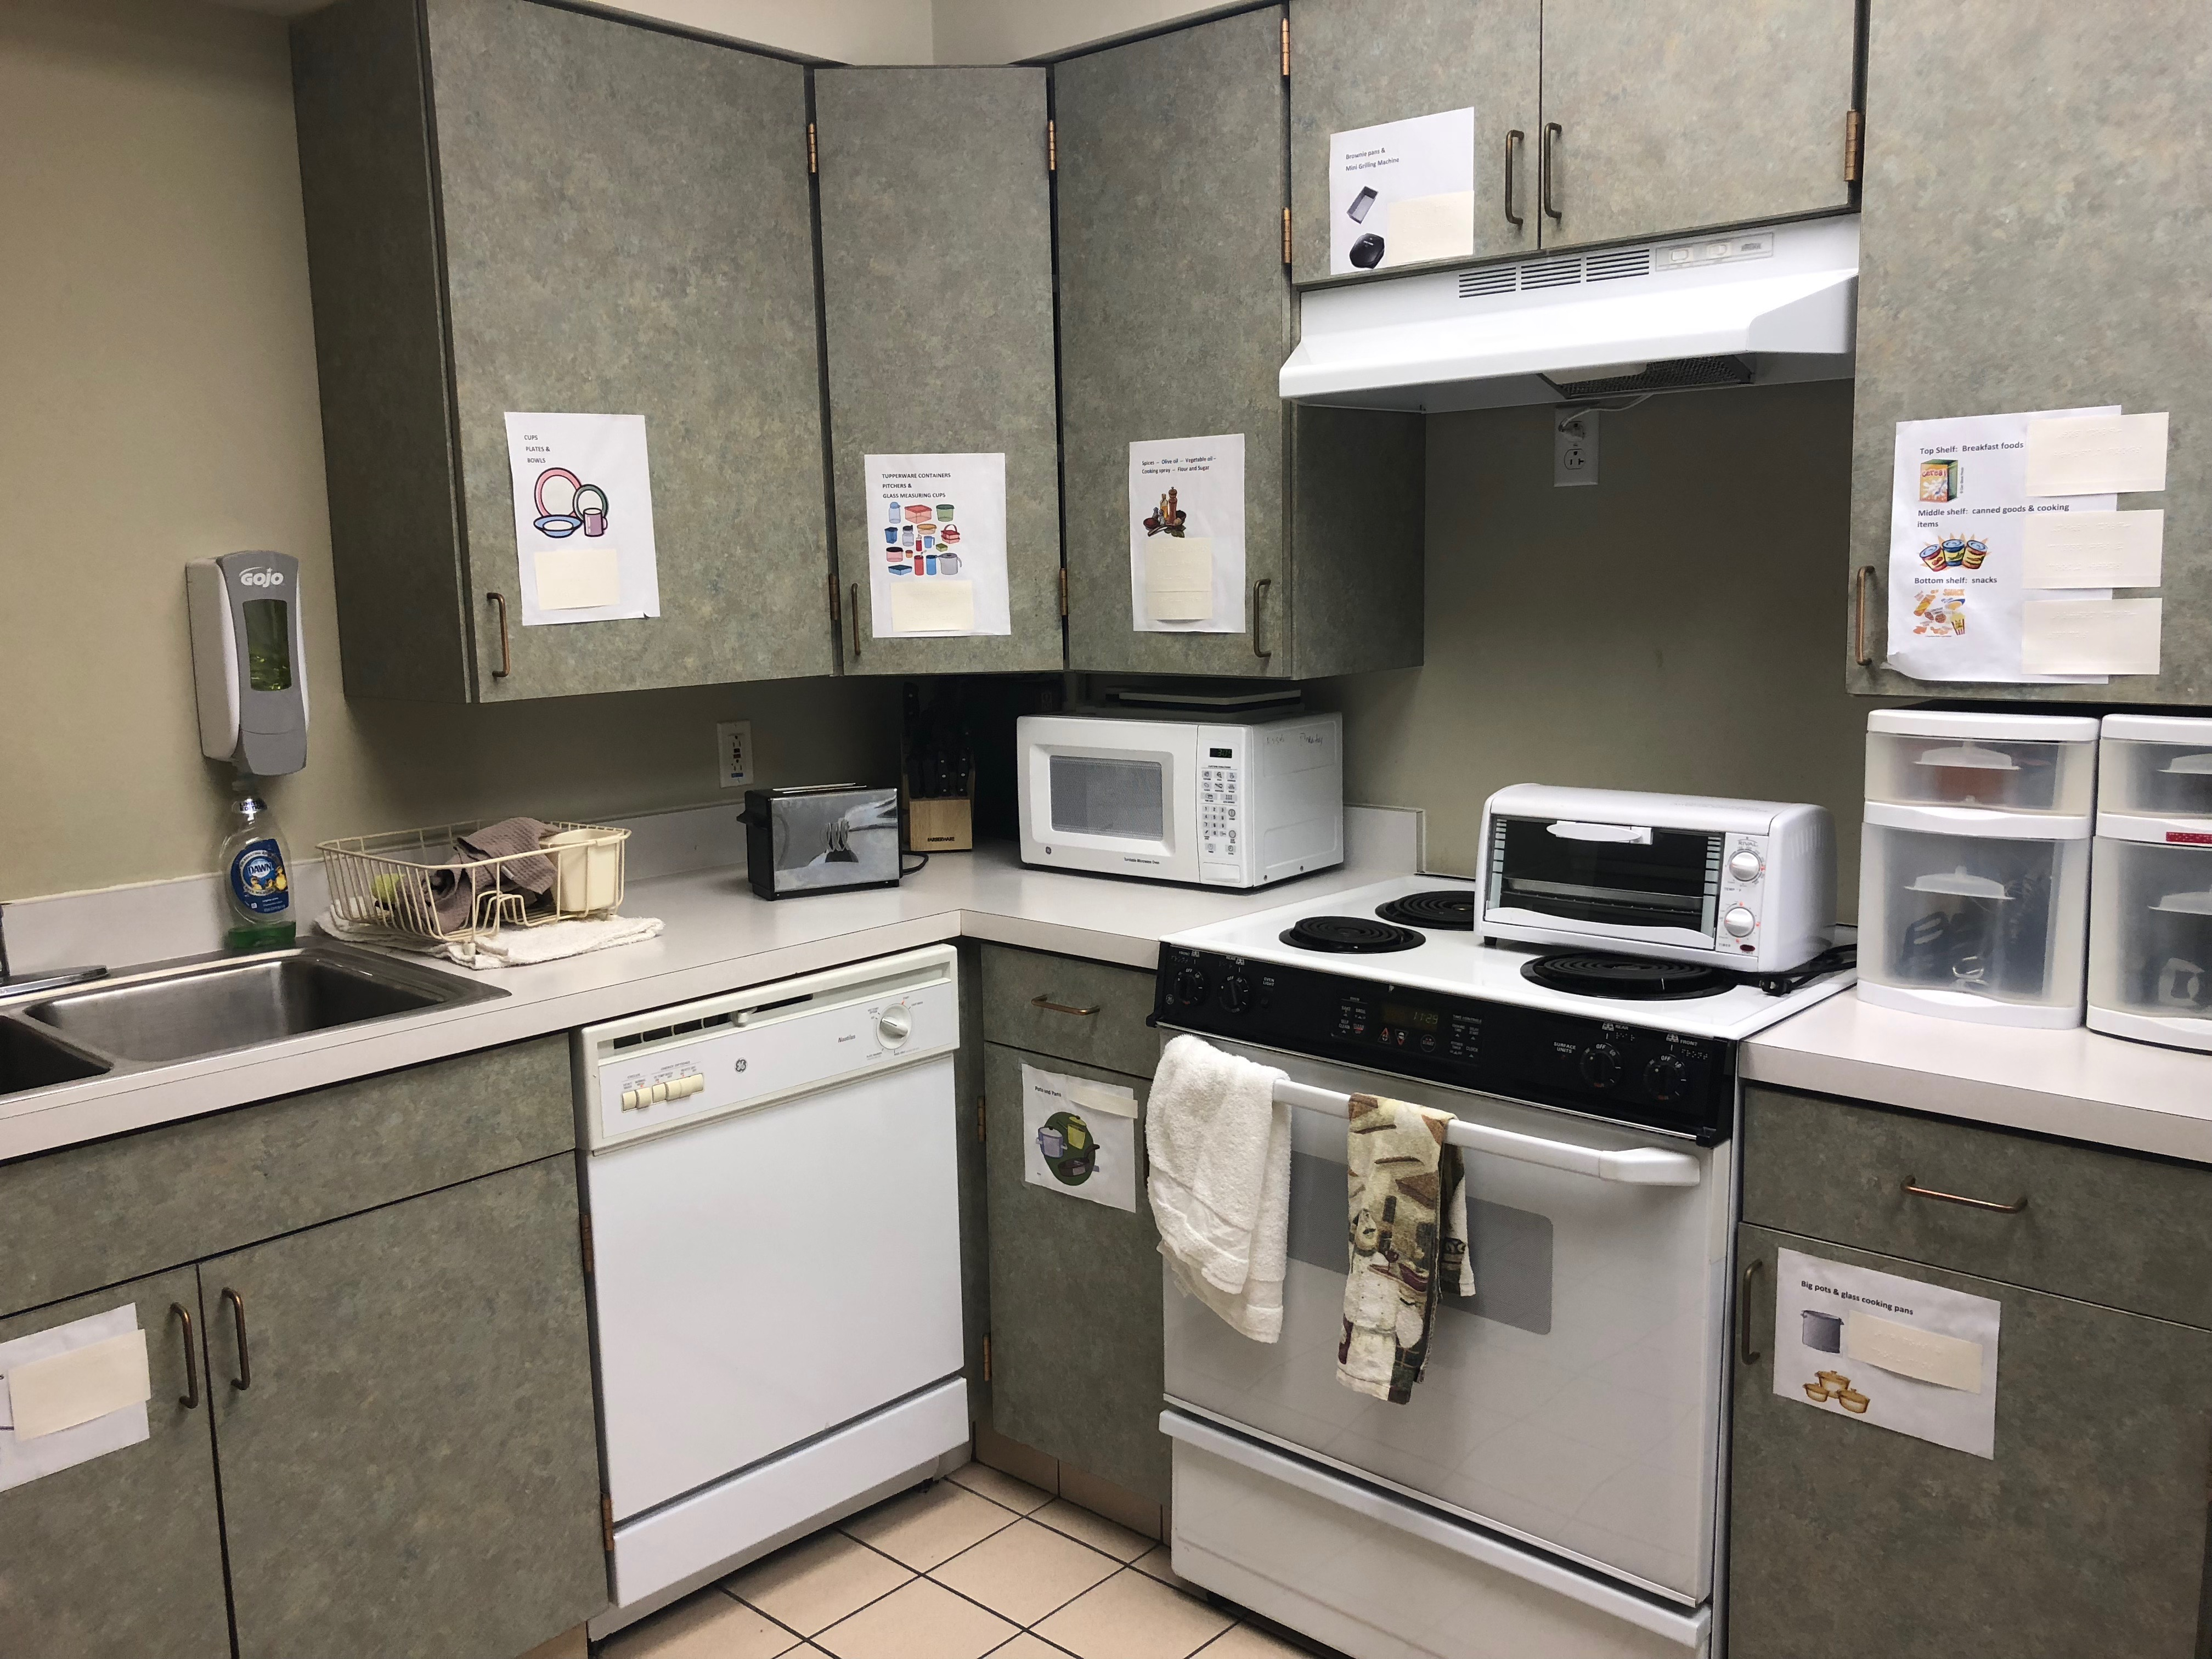 Apt kitchen with green cabinets on wall and floor. A sink, white dishwasher, oven/store, microwave and toaster oven. Beige tile floor and walls.